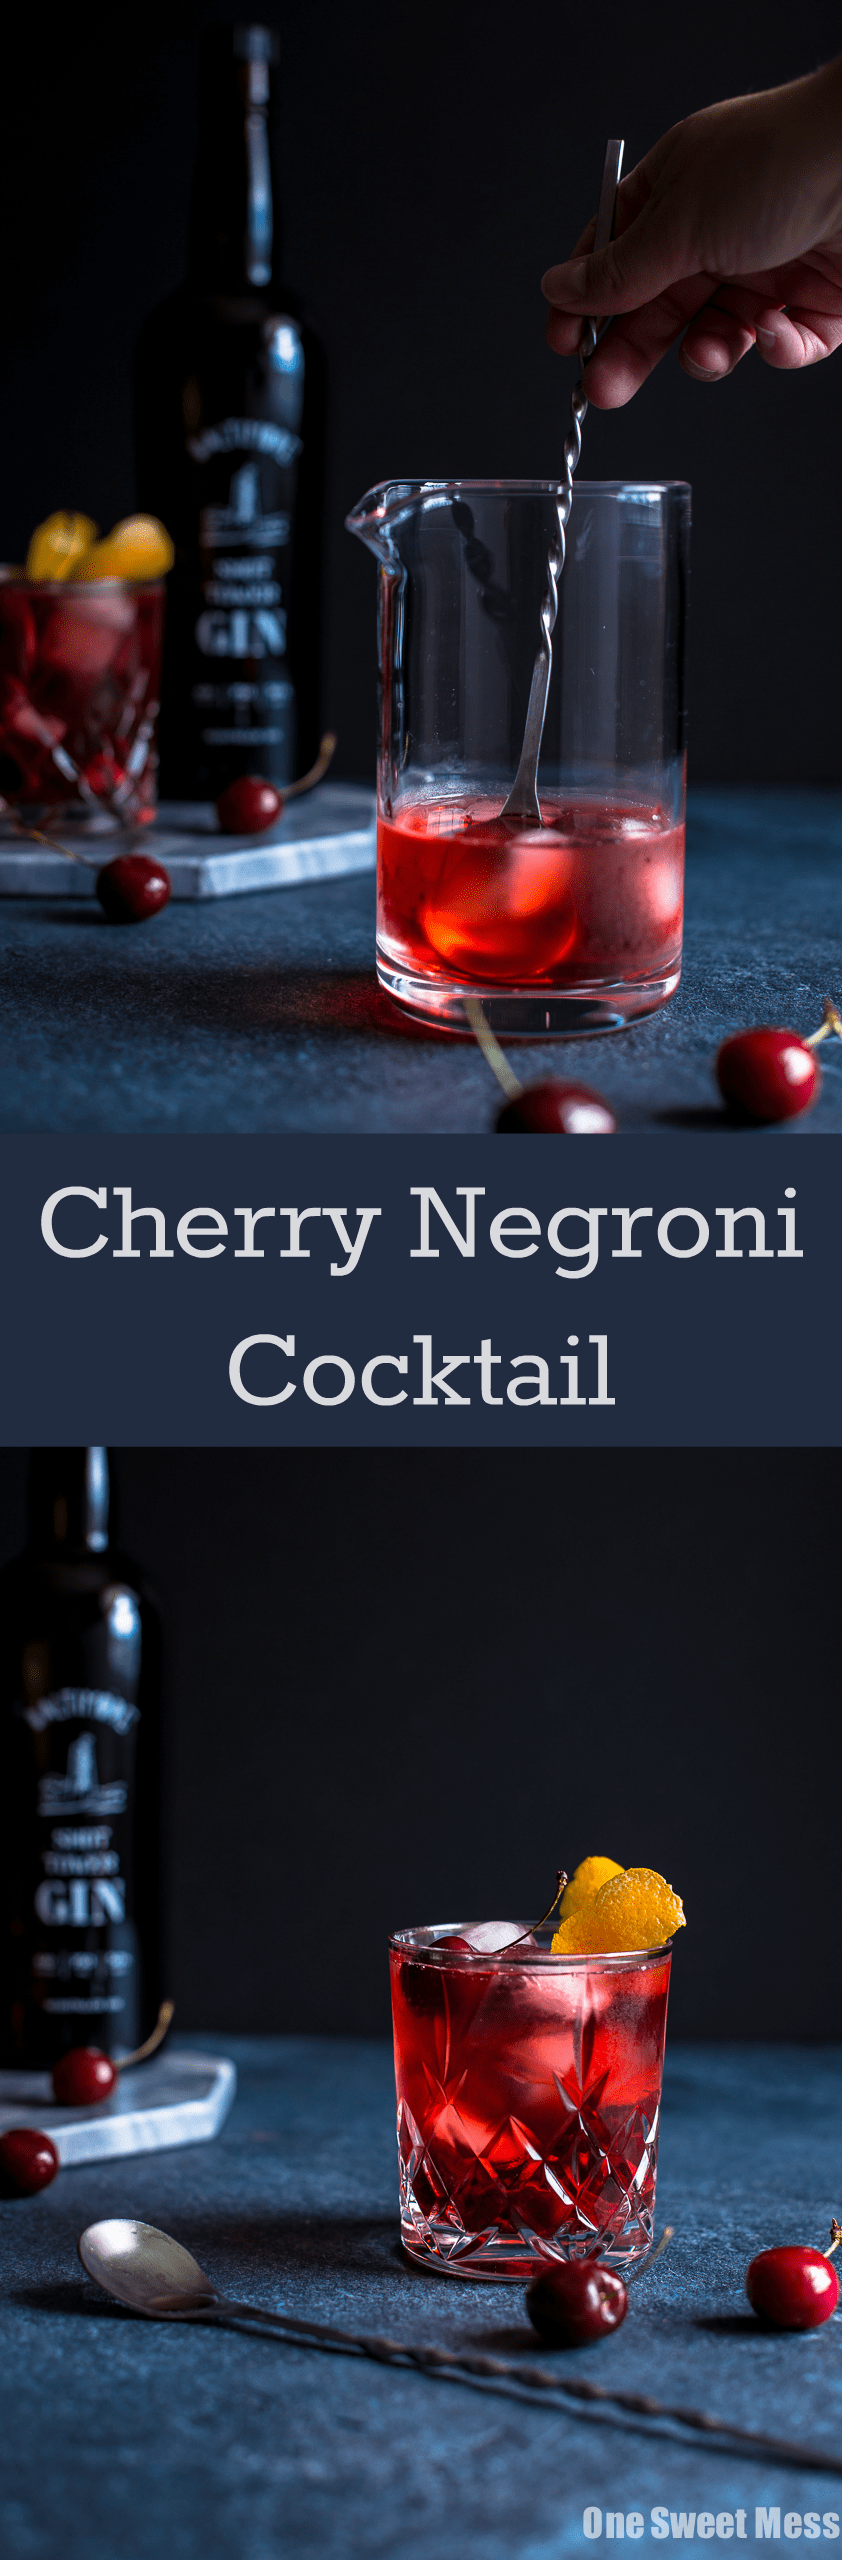 Cherry Negroni Cocktail